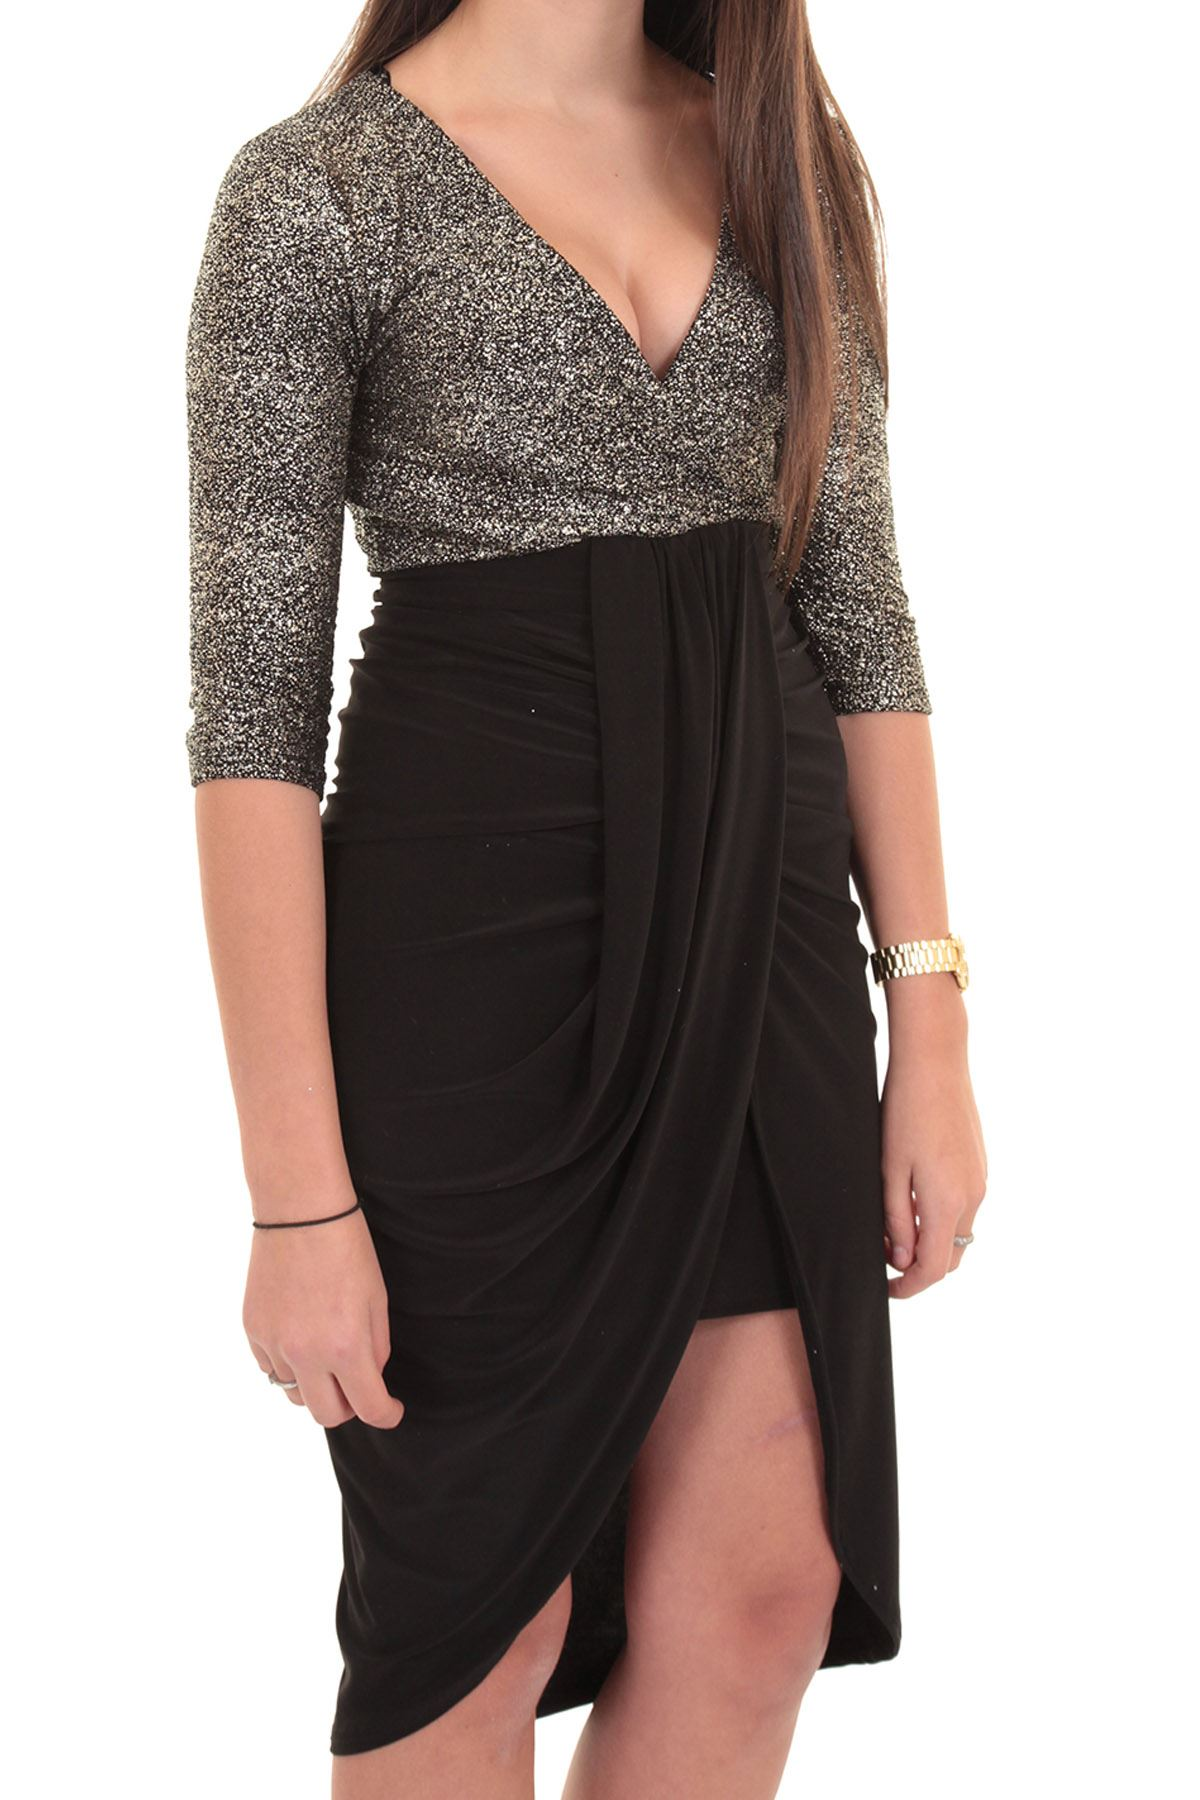 Ladies 3//4 Sleeve Plunge V Wrap Front Gathered Silver Gold Contrast Smart Dress